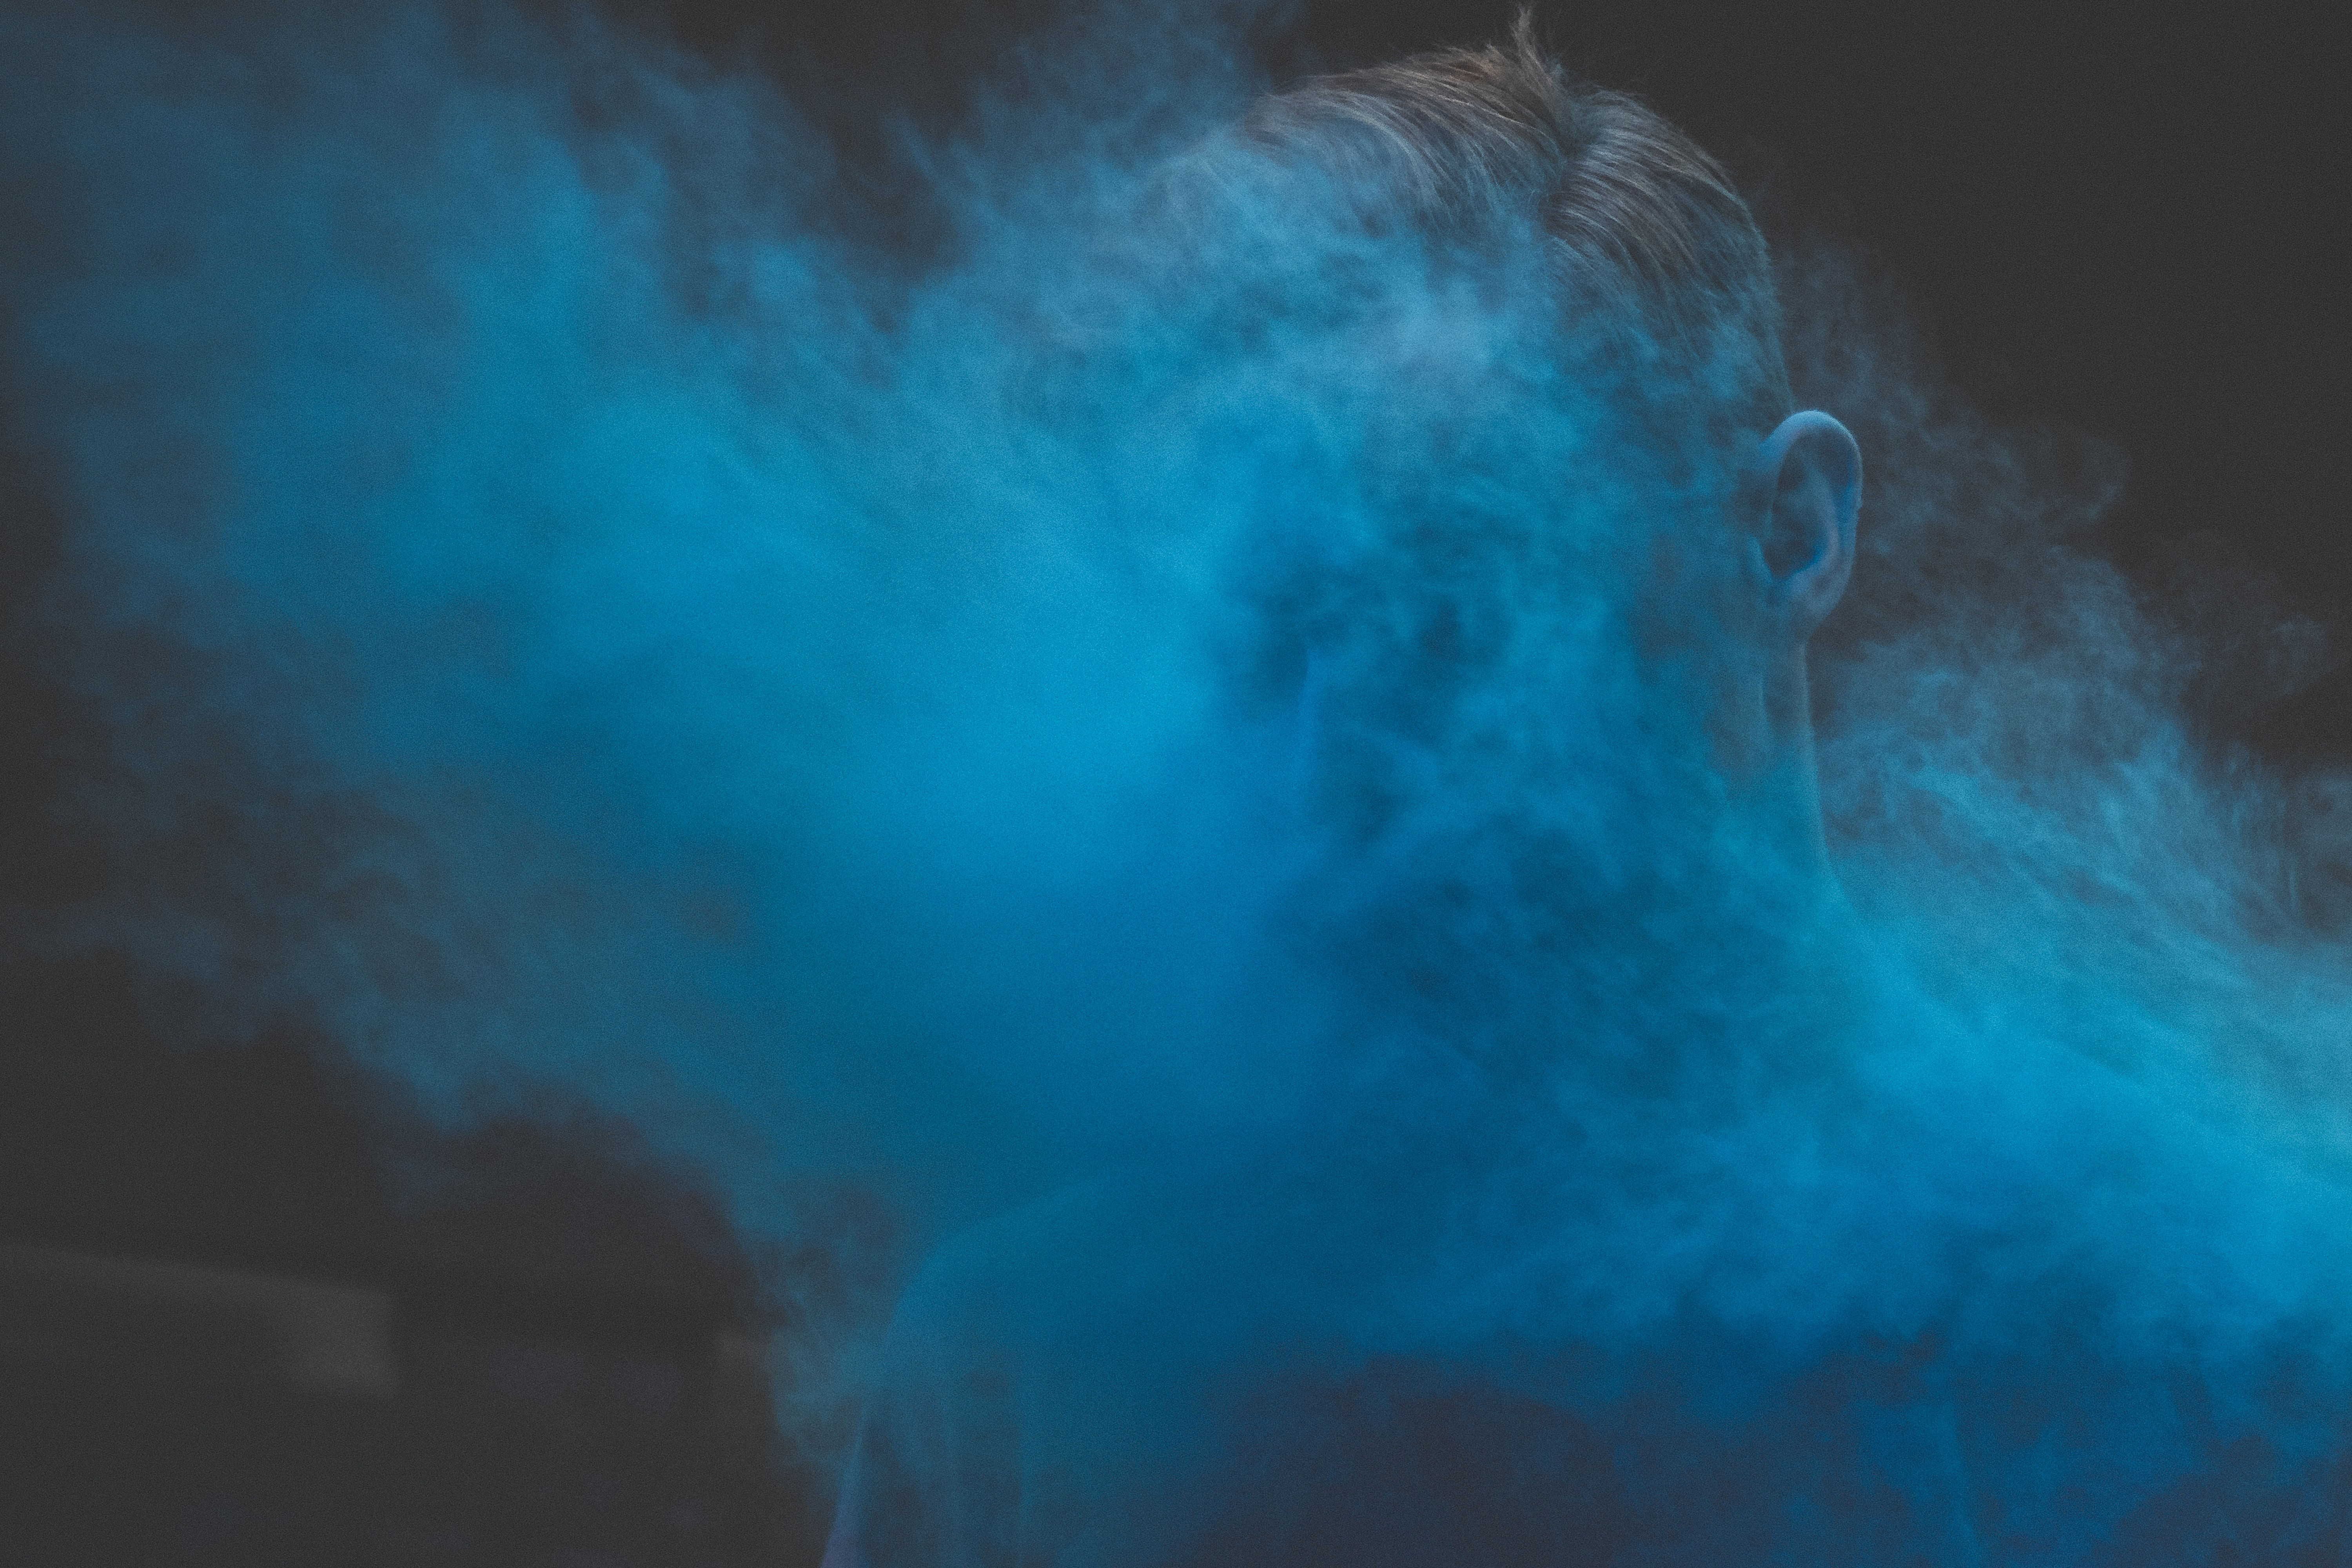 man's face covered with smoke